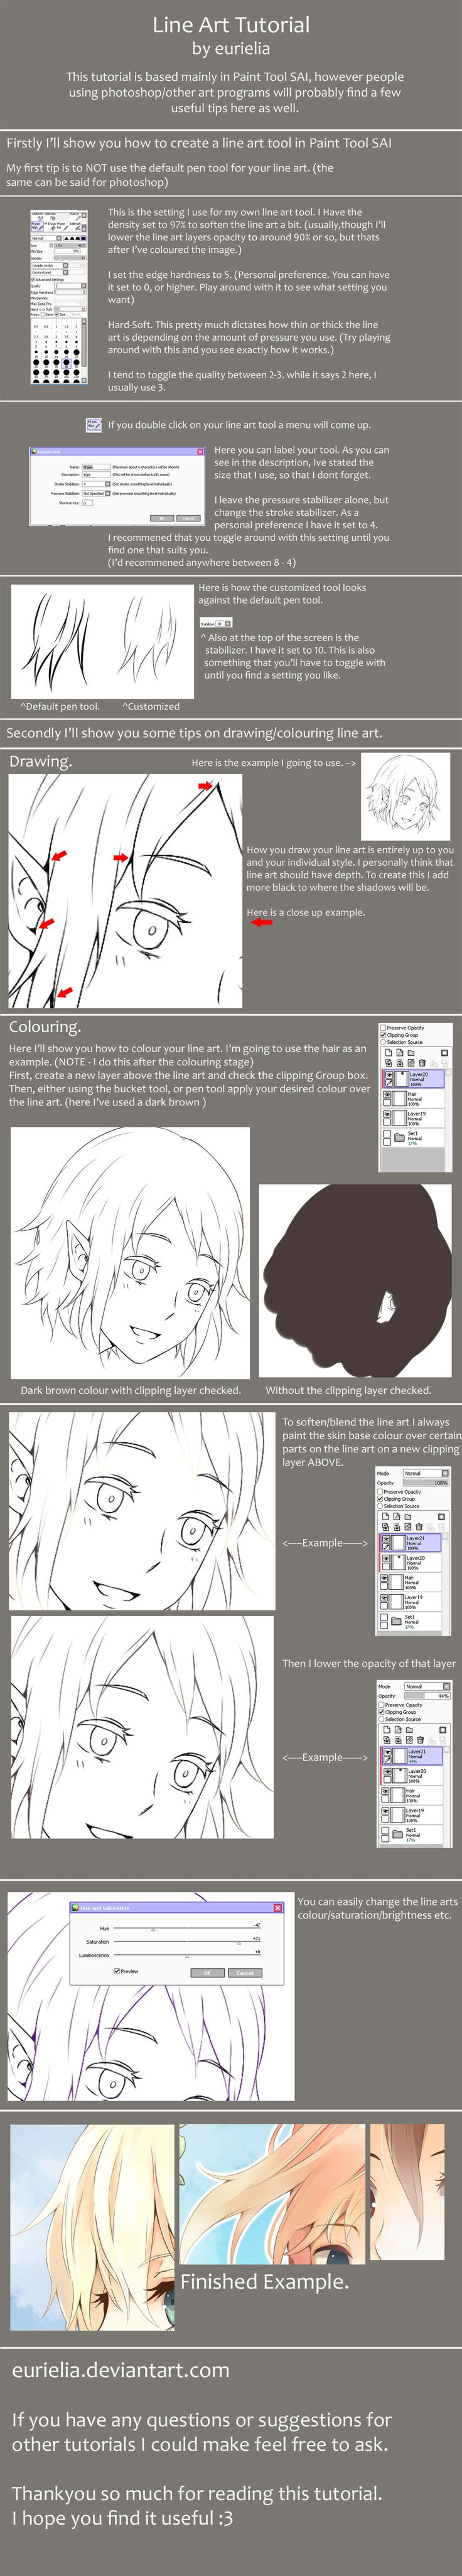 Lineart tutorial by eurielia.deviantart.com on @deviantART